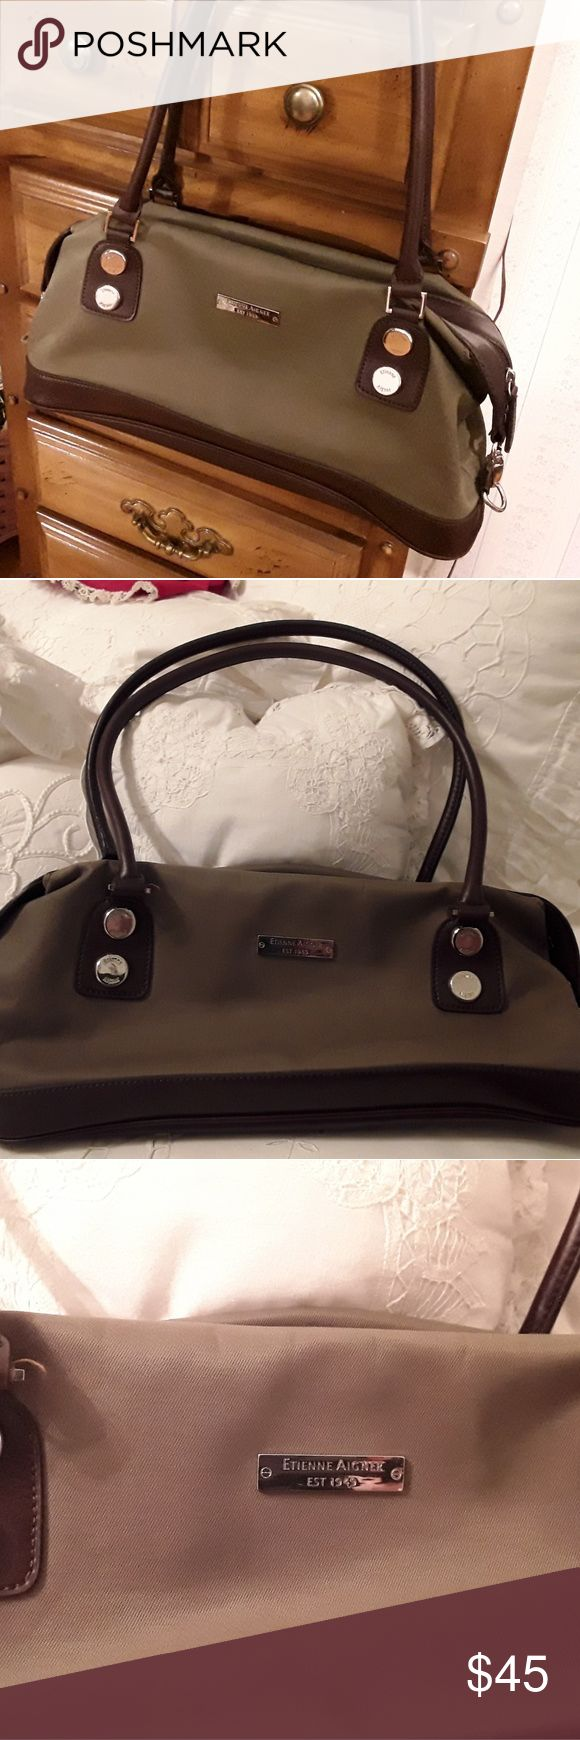 """NEW ETIENNE AIGNER HANDBAG BROWN /GREEN, 24"""" STRAP I HAVE FOR SALE A NEW ETIENNE AIGNER HANDBAG.  IT HAS BROWN LEATHER AND OLIVE GREEN CANVAS WITH SILVER HARDWARE WITH EA LOGO.  IT HAS TOP ZIP CLOSUR WITH FULL LENGTH ZIP MIDDLE POCKET WITH TWO OPEN POCKETS ON EACH SIDE AND ONE INSIDE SMALLER ZIP POCKET.  THE STRAPS ARE 24-25 INCHES APPOX.  INSIDE HAS BEAUTIFUL SIGNATURE PATTERN WITH ETIENNE AIGNER EMBELLEM. Etienne Aigner Bags"""